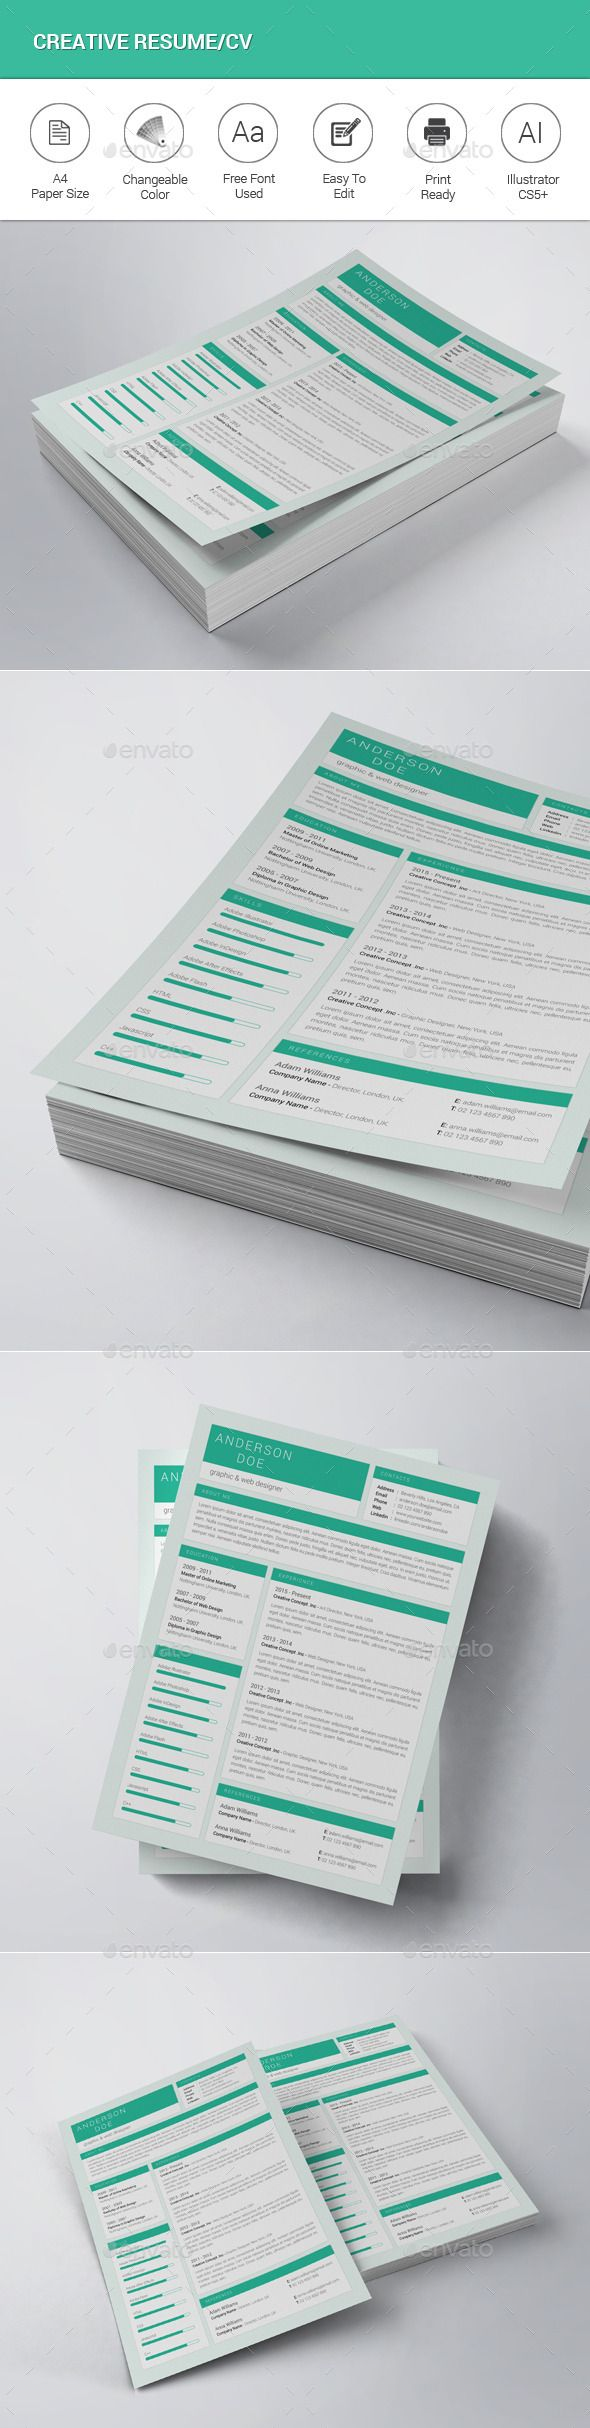 Creative ResumeCV Simple Resume TemplateCv 12